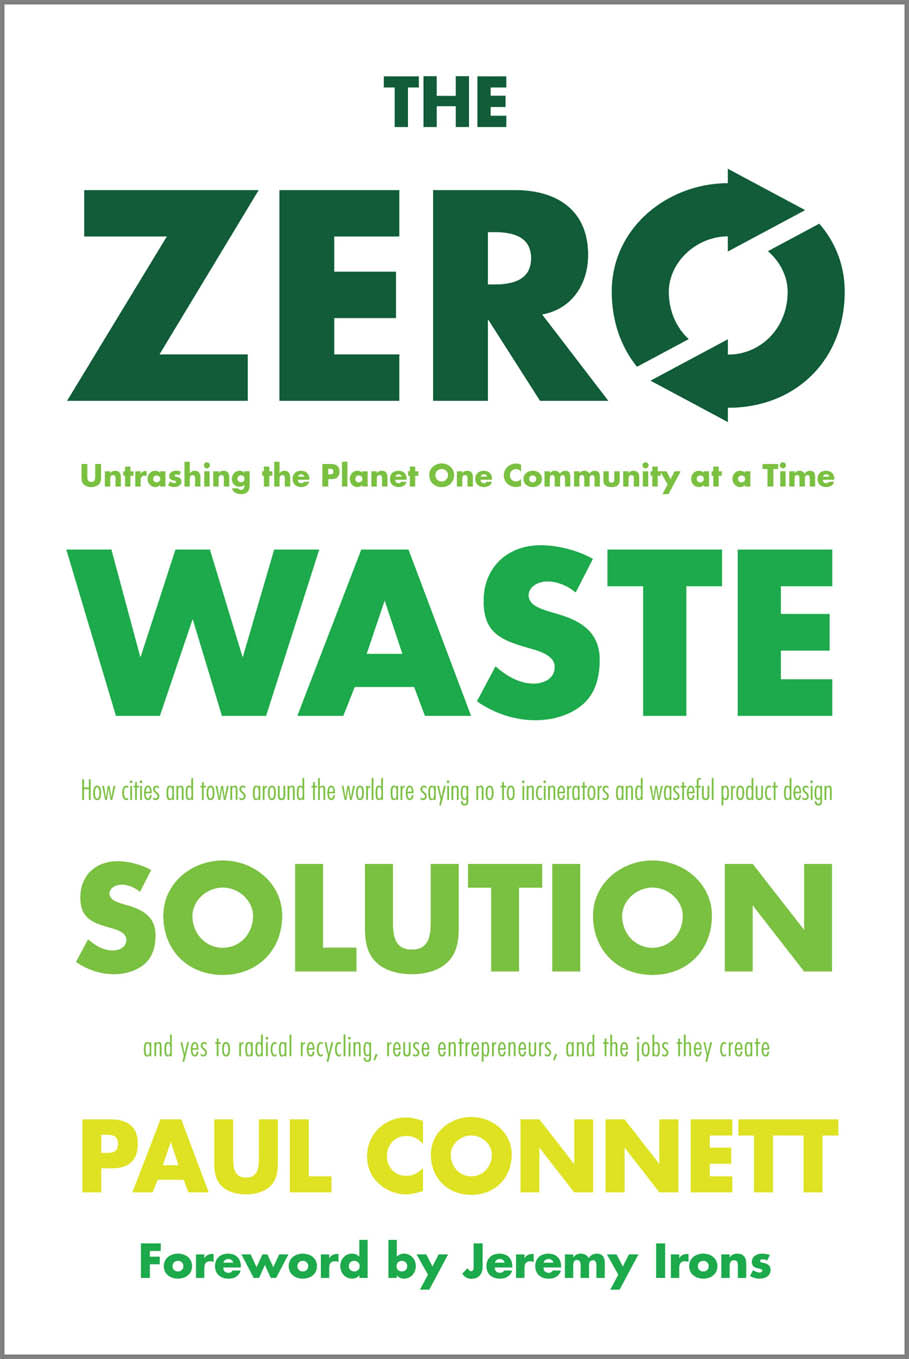 Zero Waste: How to Untrash the Planet